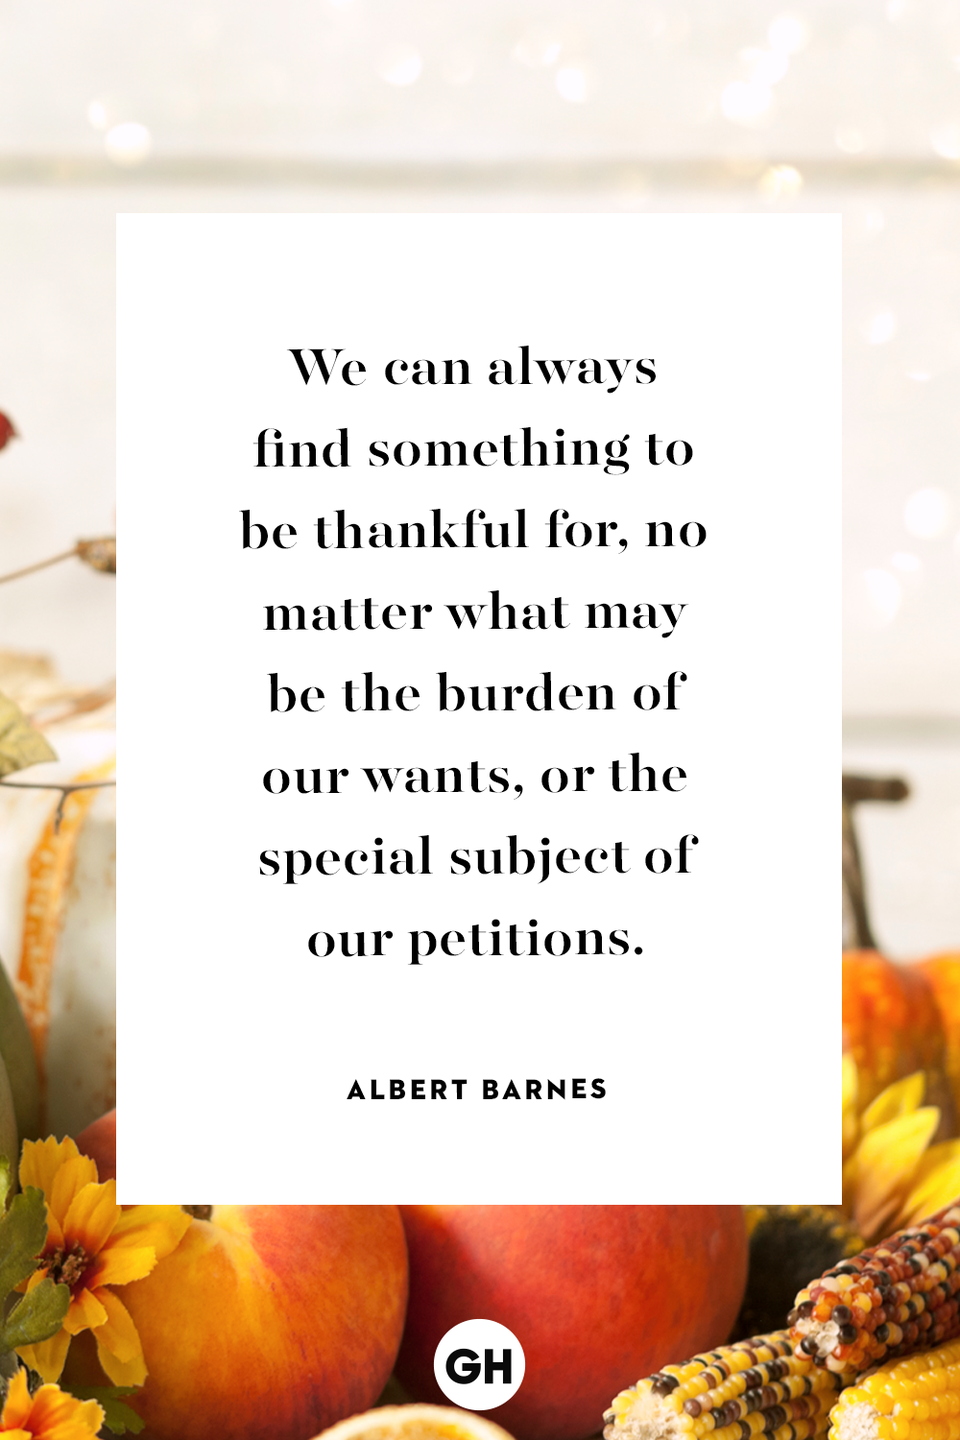 <p>We can always find something to be thankful for, no matter what may be the burden of our wants, or the special subject of our petitions.</p>